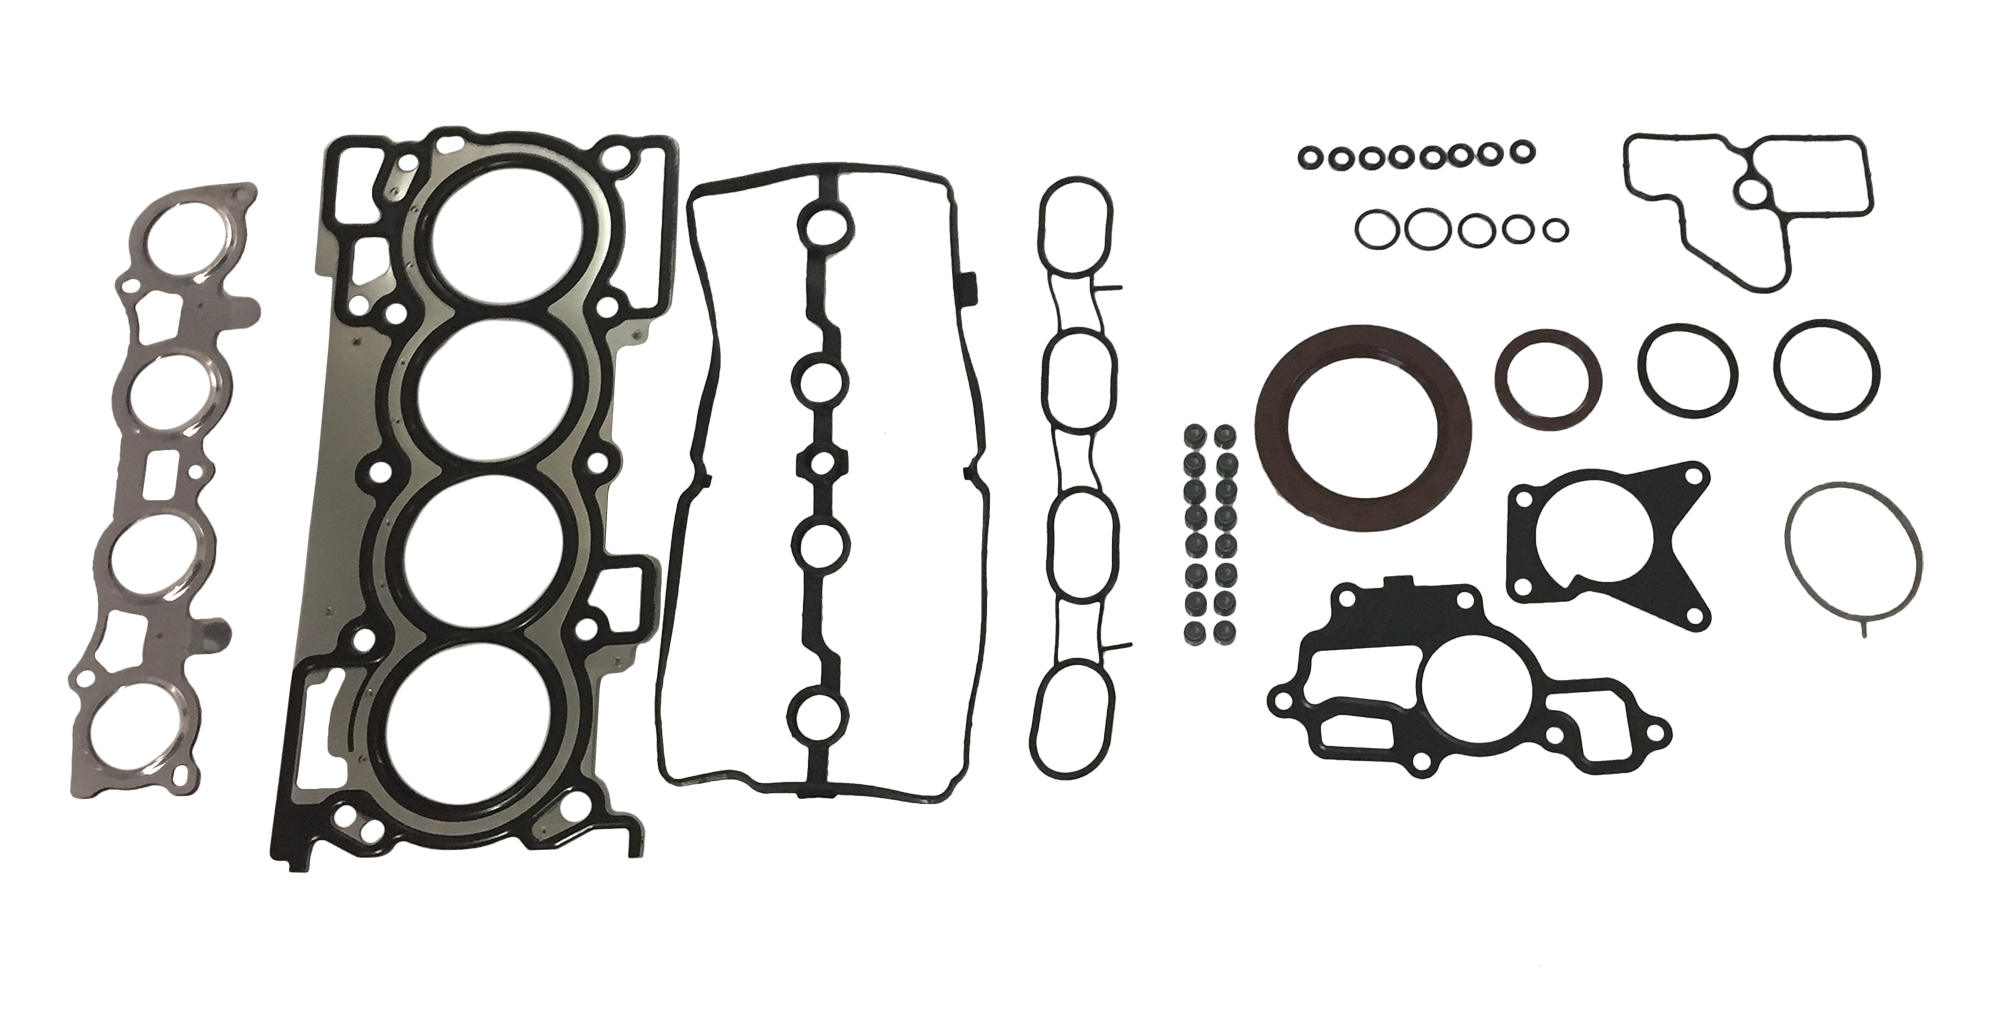 Gasket set cylinder head gasket Nissan Qashqai 2.0 MR20DE 10101-EN228 NEW